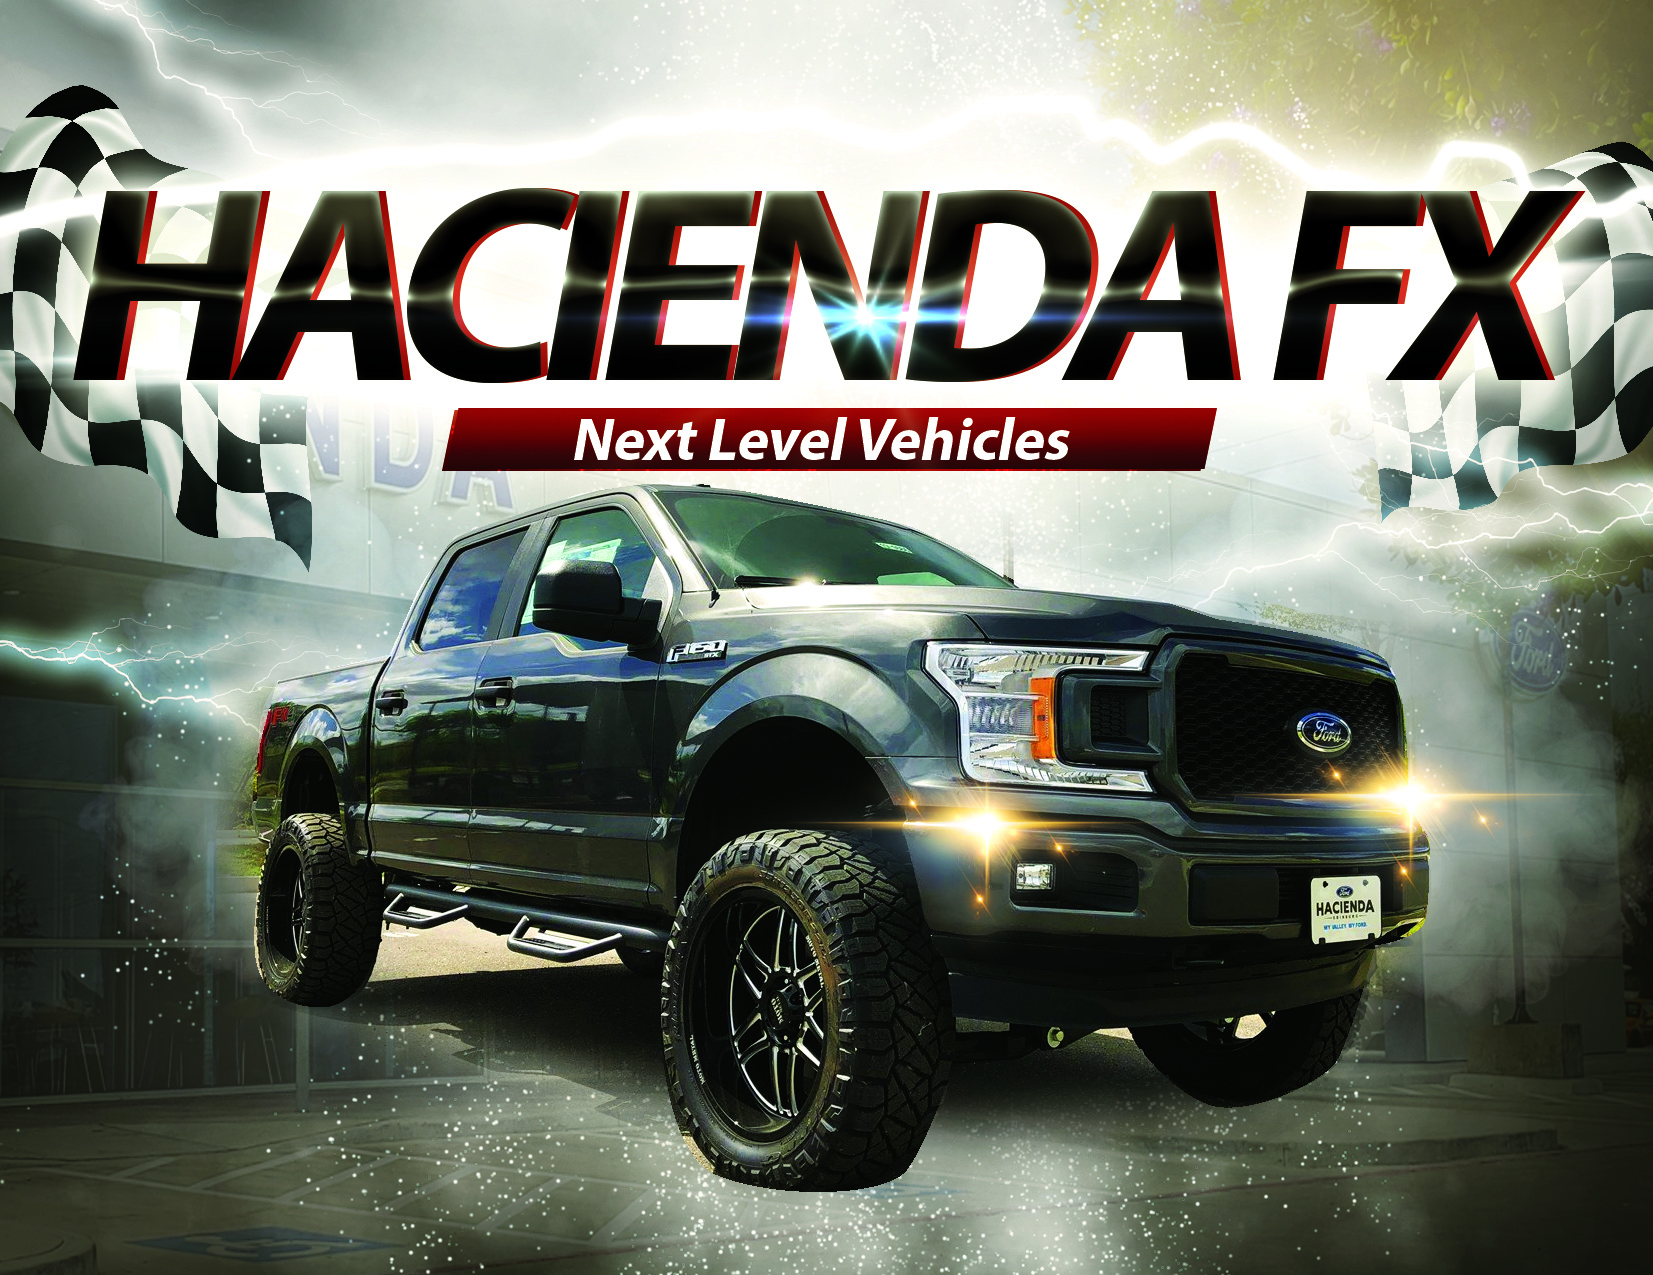 hacienda effects, customize your ride in Edinburg